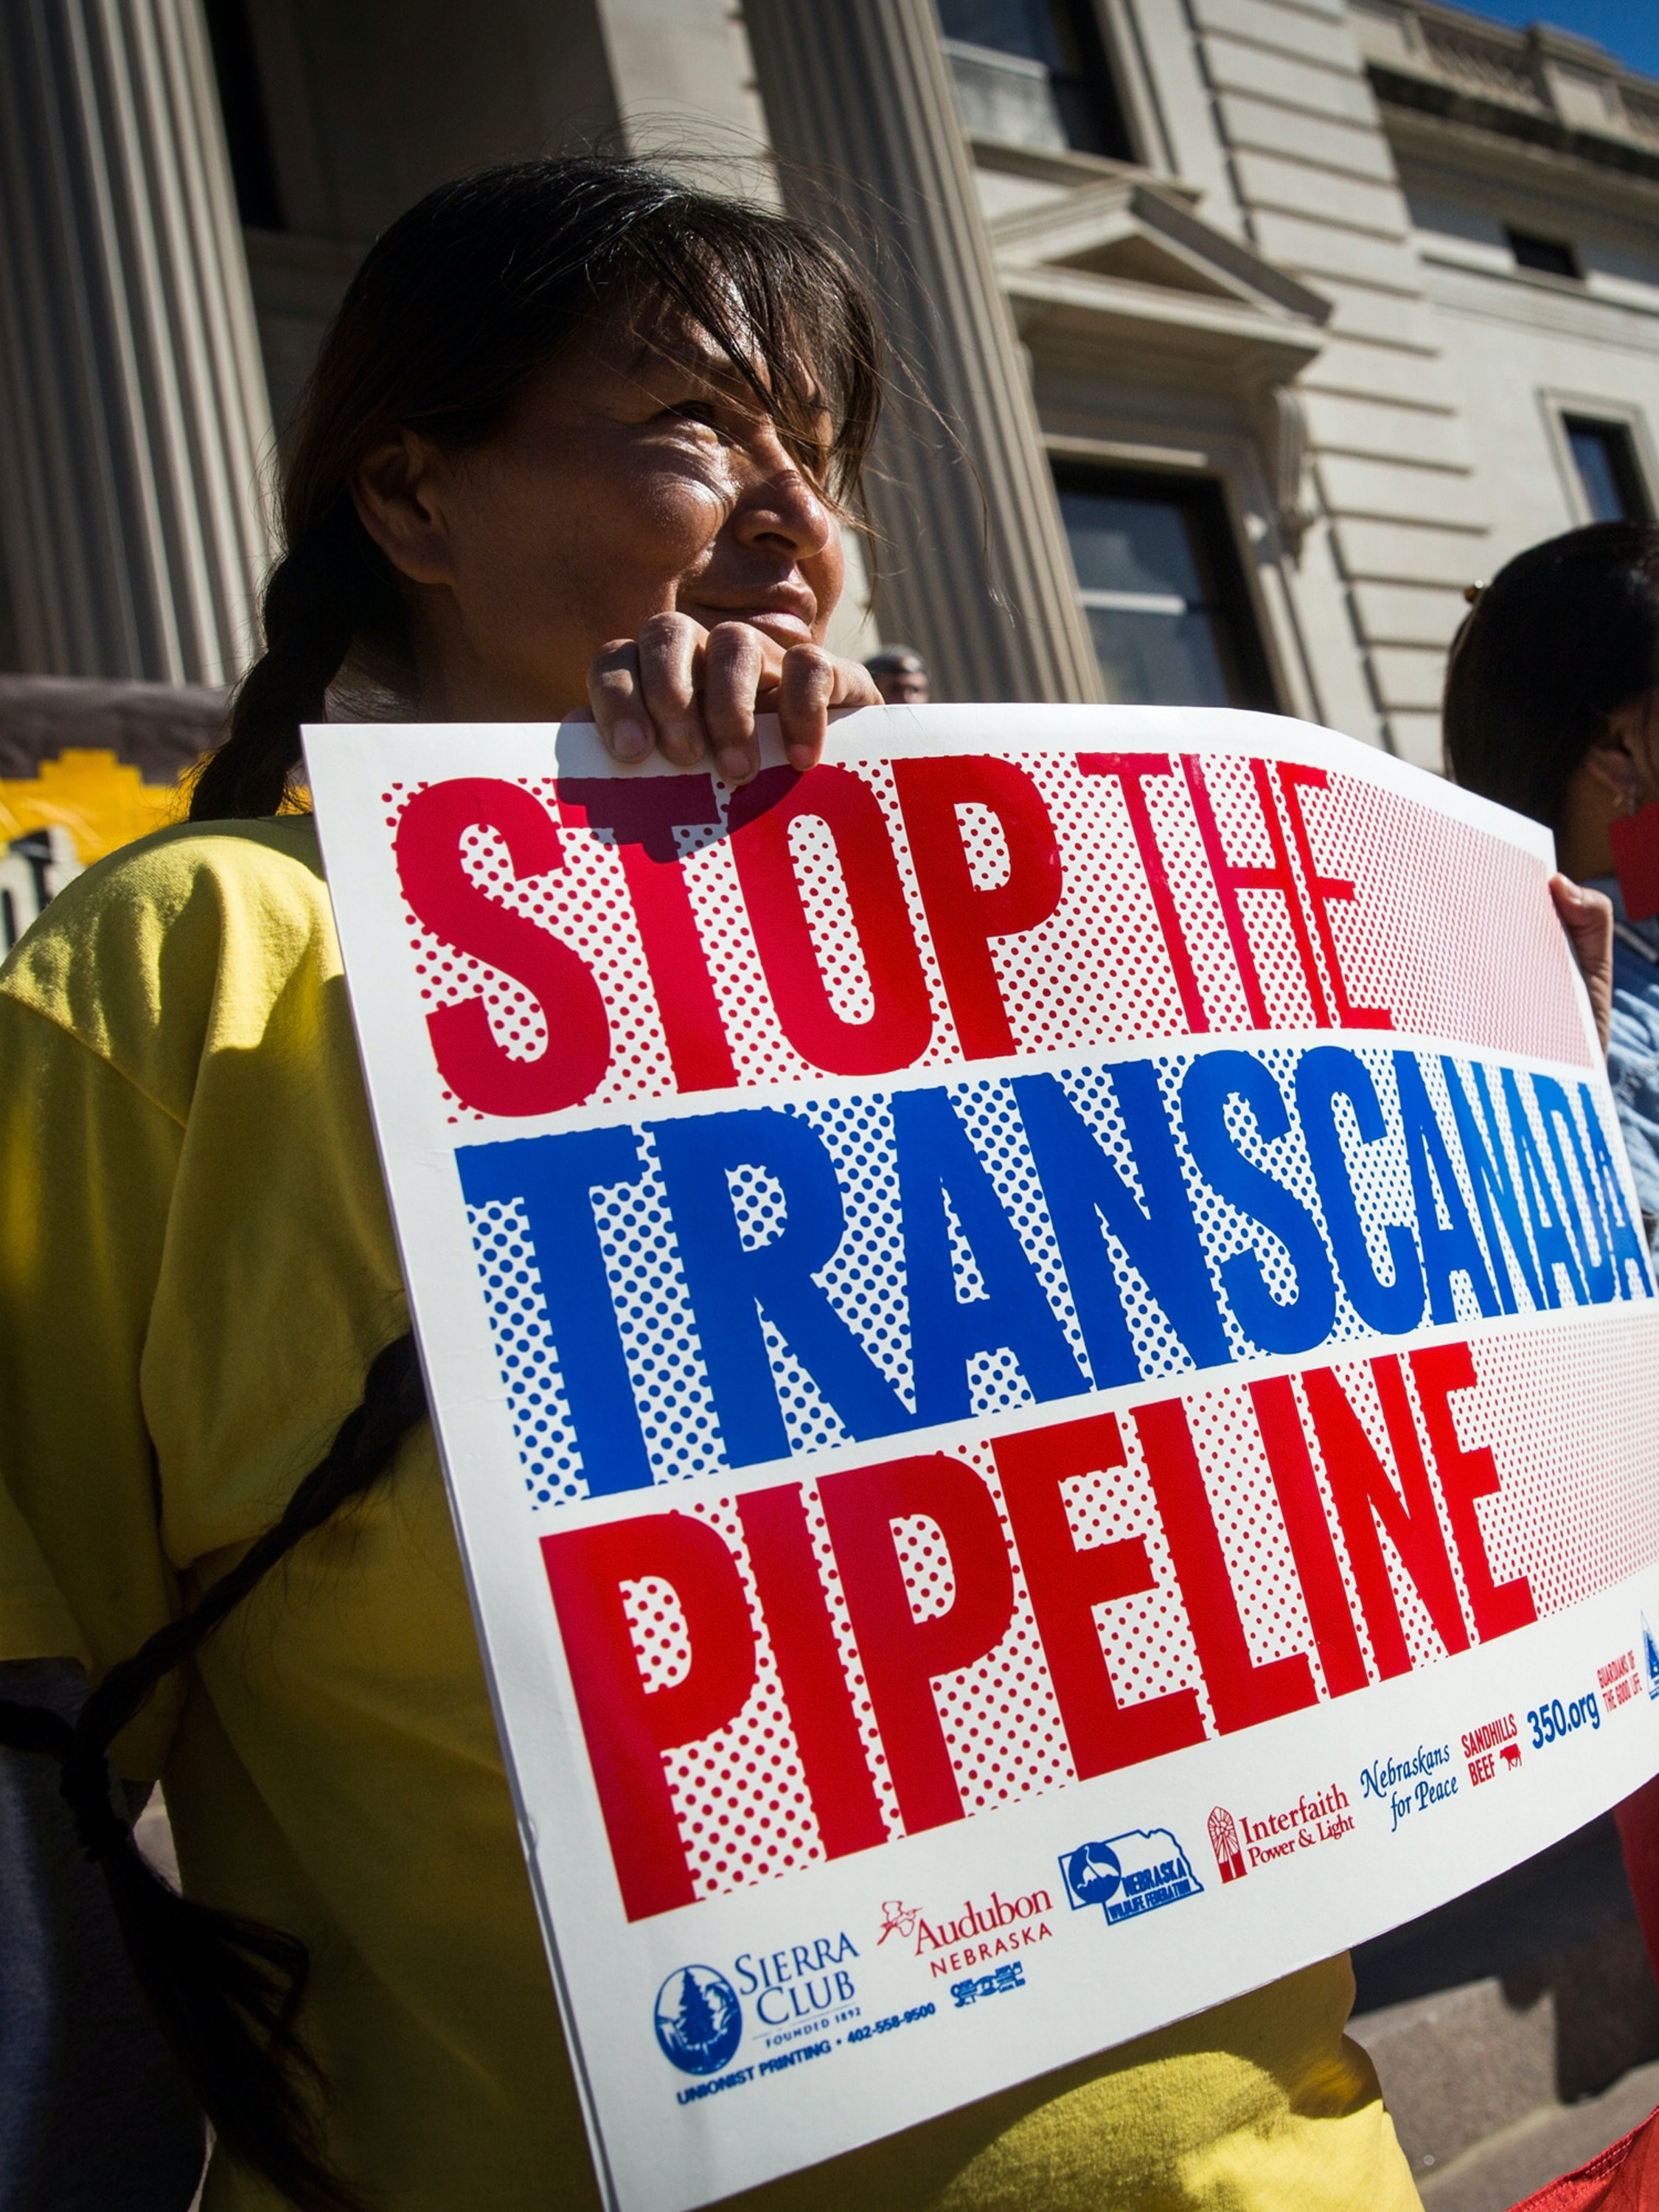 PIERRE, SD - OCTOBER 13:  People participate in a protest against the proposed Keystone XL pipeline on October 13, 2014 in Pierre, South Dakota. Numerous Native American tribes, ranchers, politicians and people against the pipeline came together to hold a rally on the steps of the state's capital building.  (Photo by Andrew Burton/Getty Images)